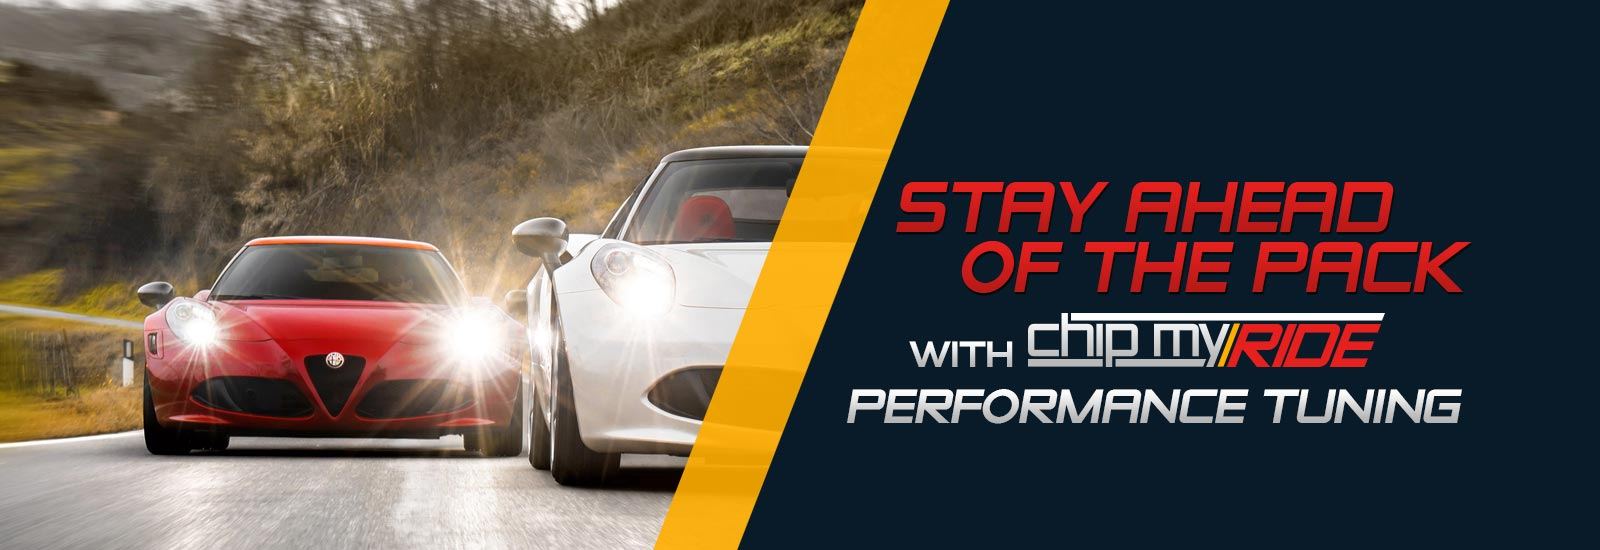 Stay ahead of the pack with performance chip tuning